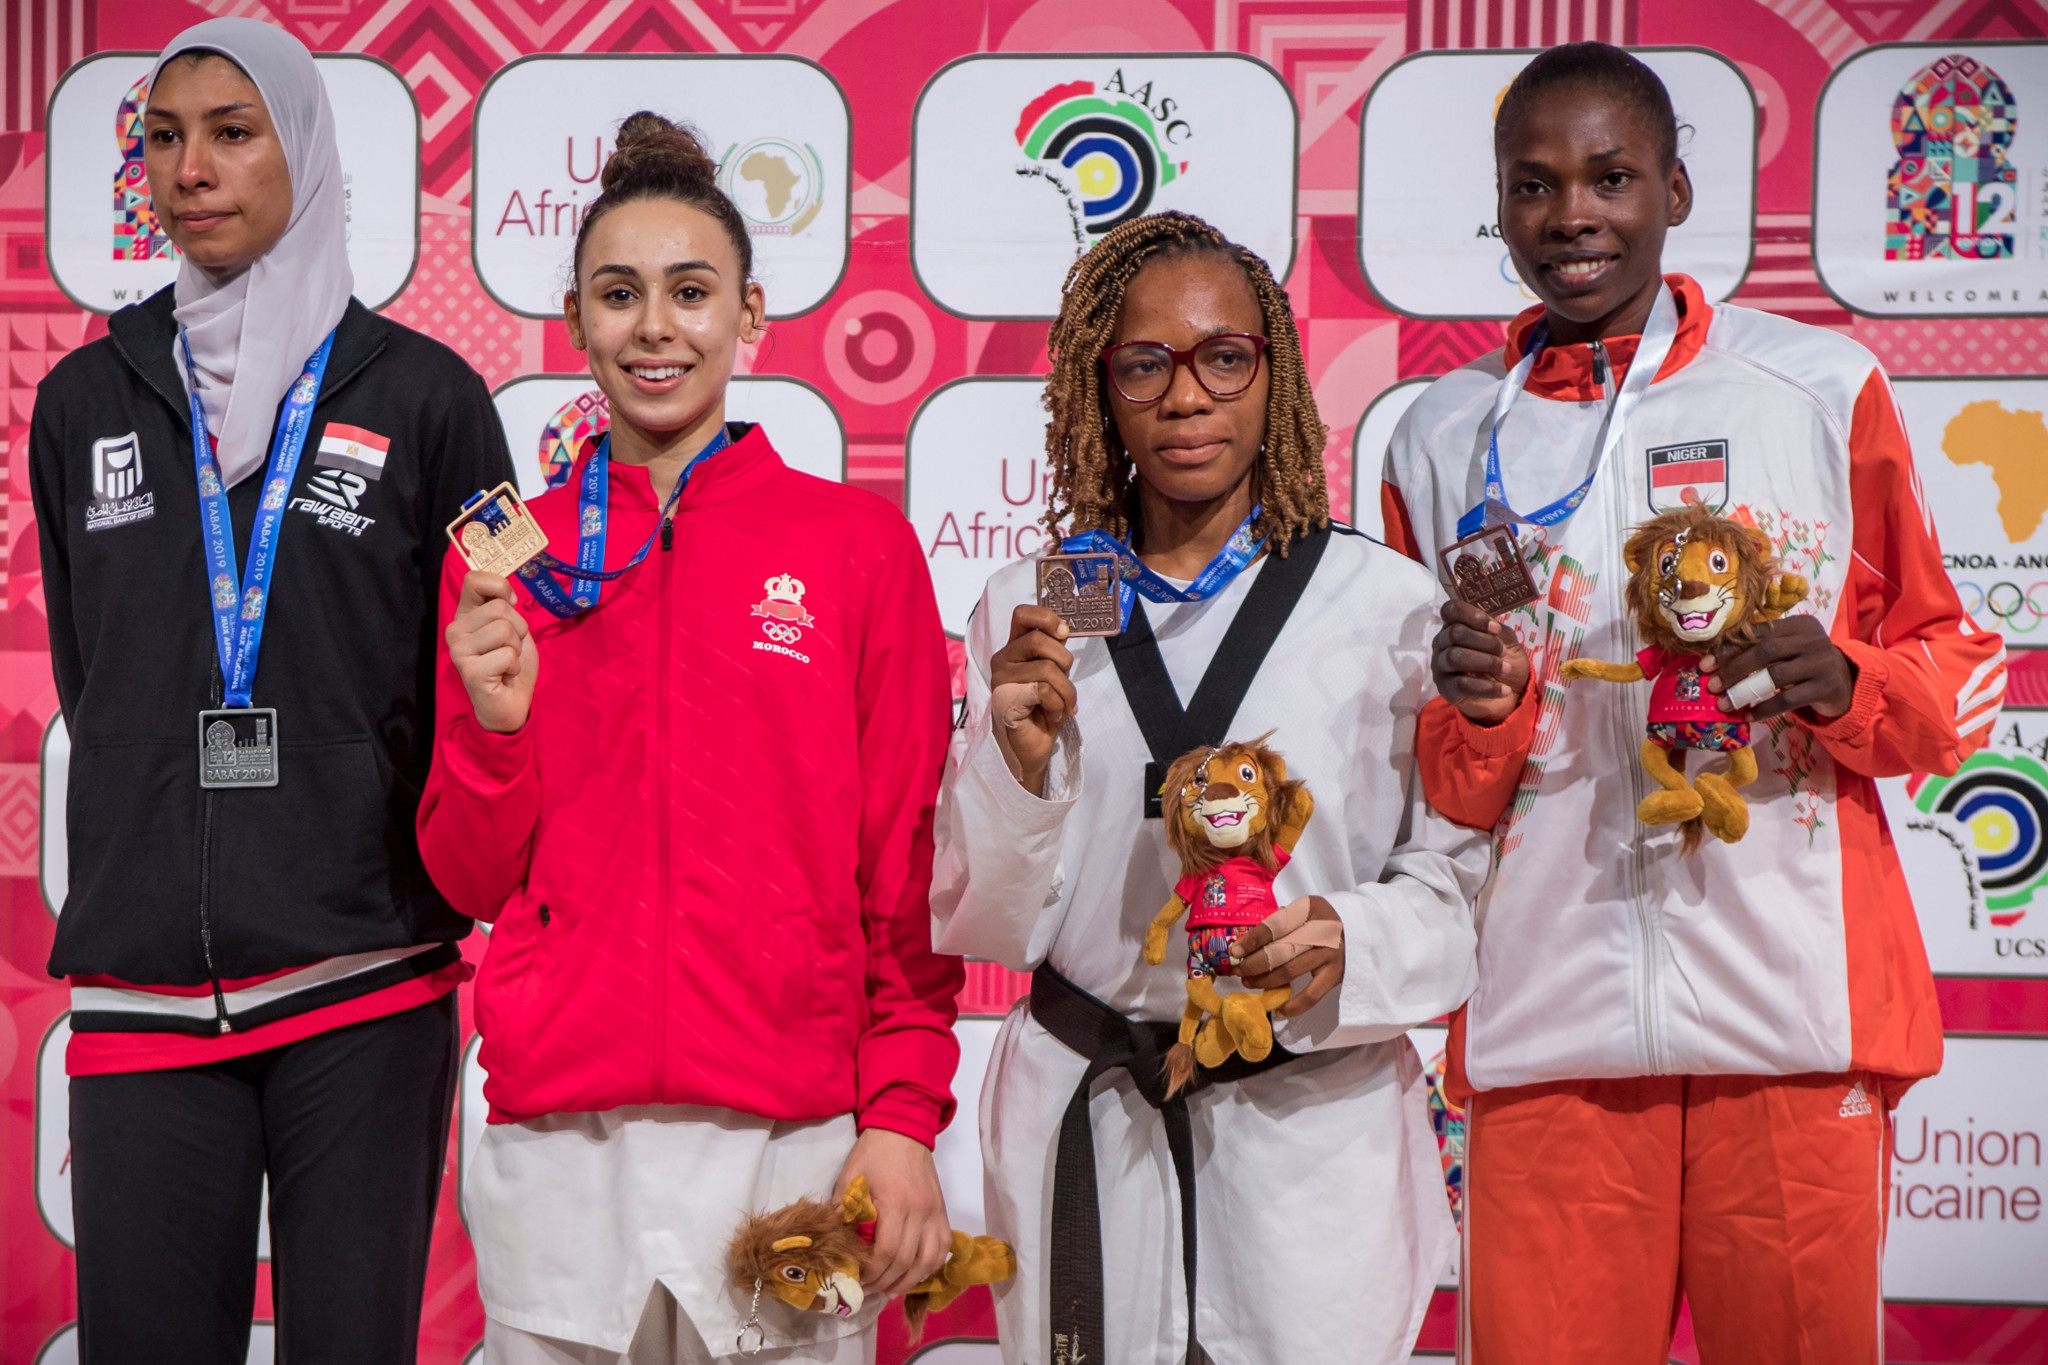 Morocco top taekwondo African Games medal table as sport showcased in Rabat